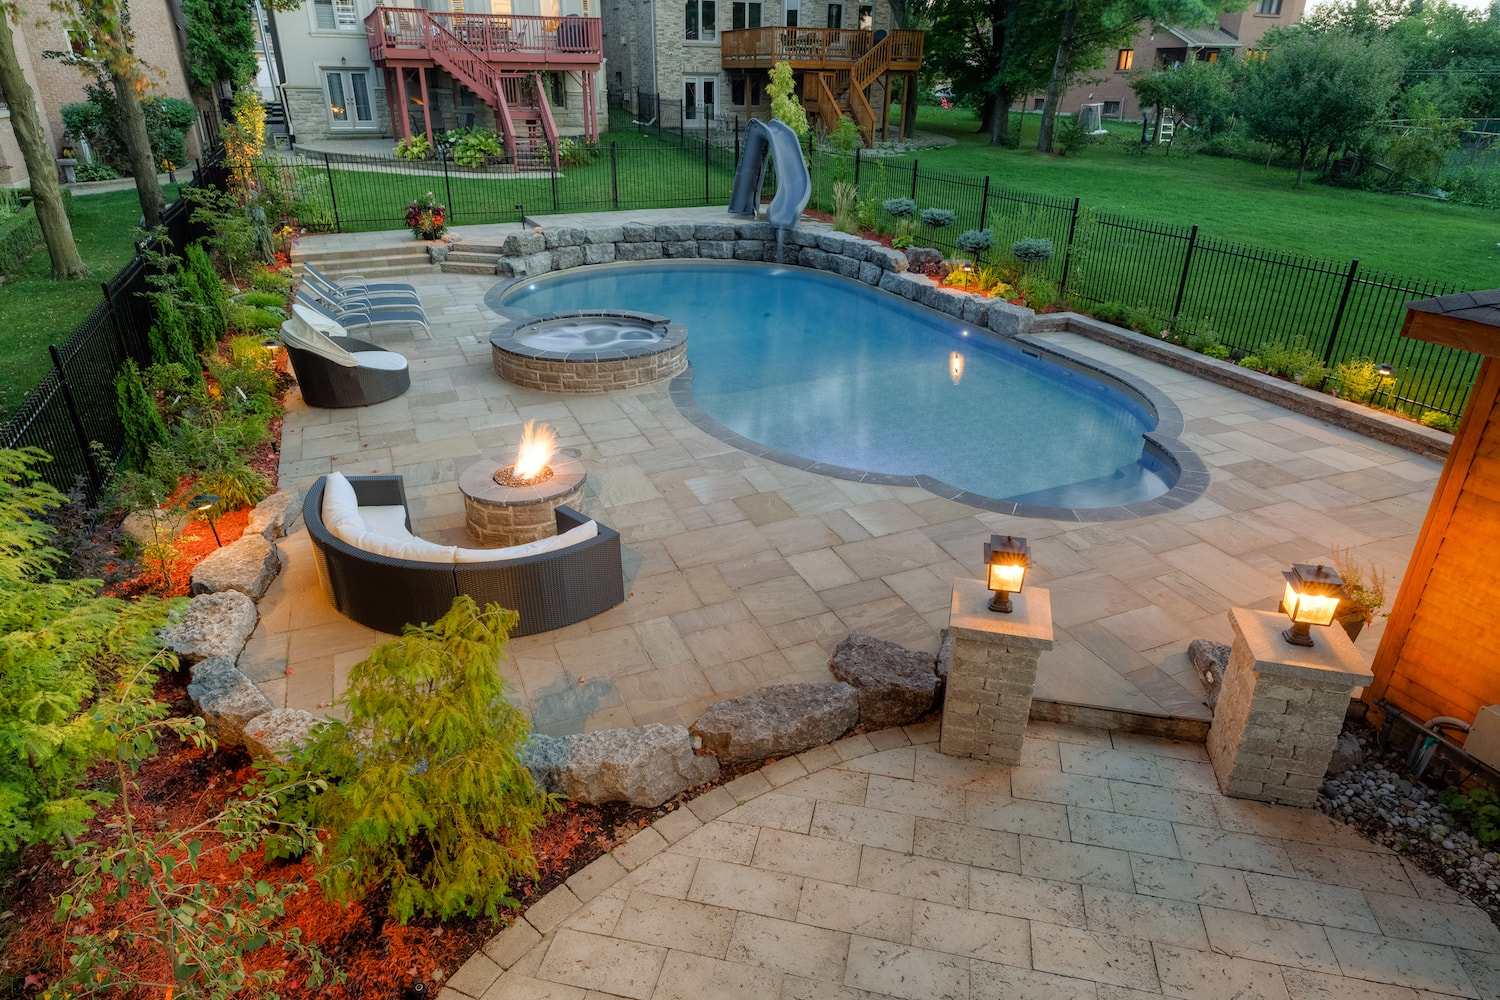 Vinyl Pool vs. Fiberglass Pool vs. Concrete Pool: Advantages and Disadvantages